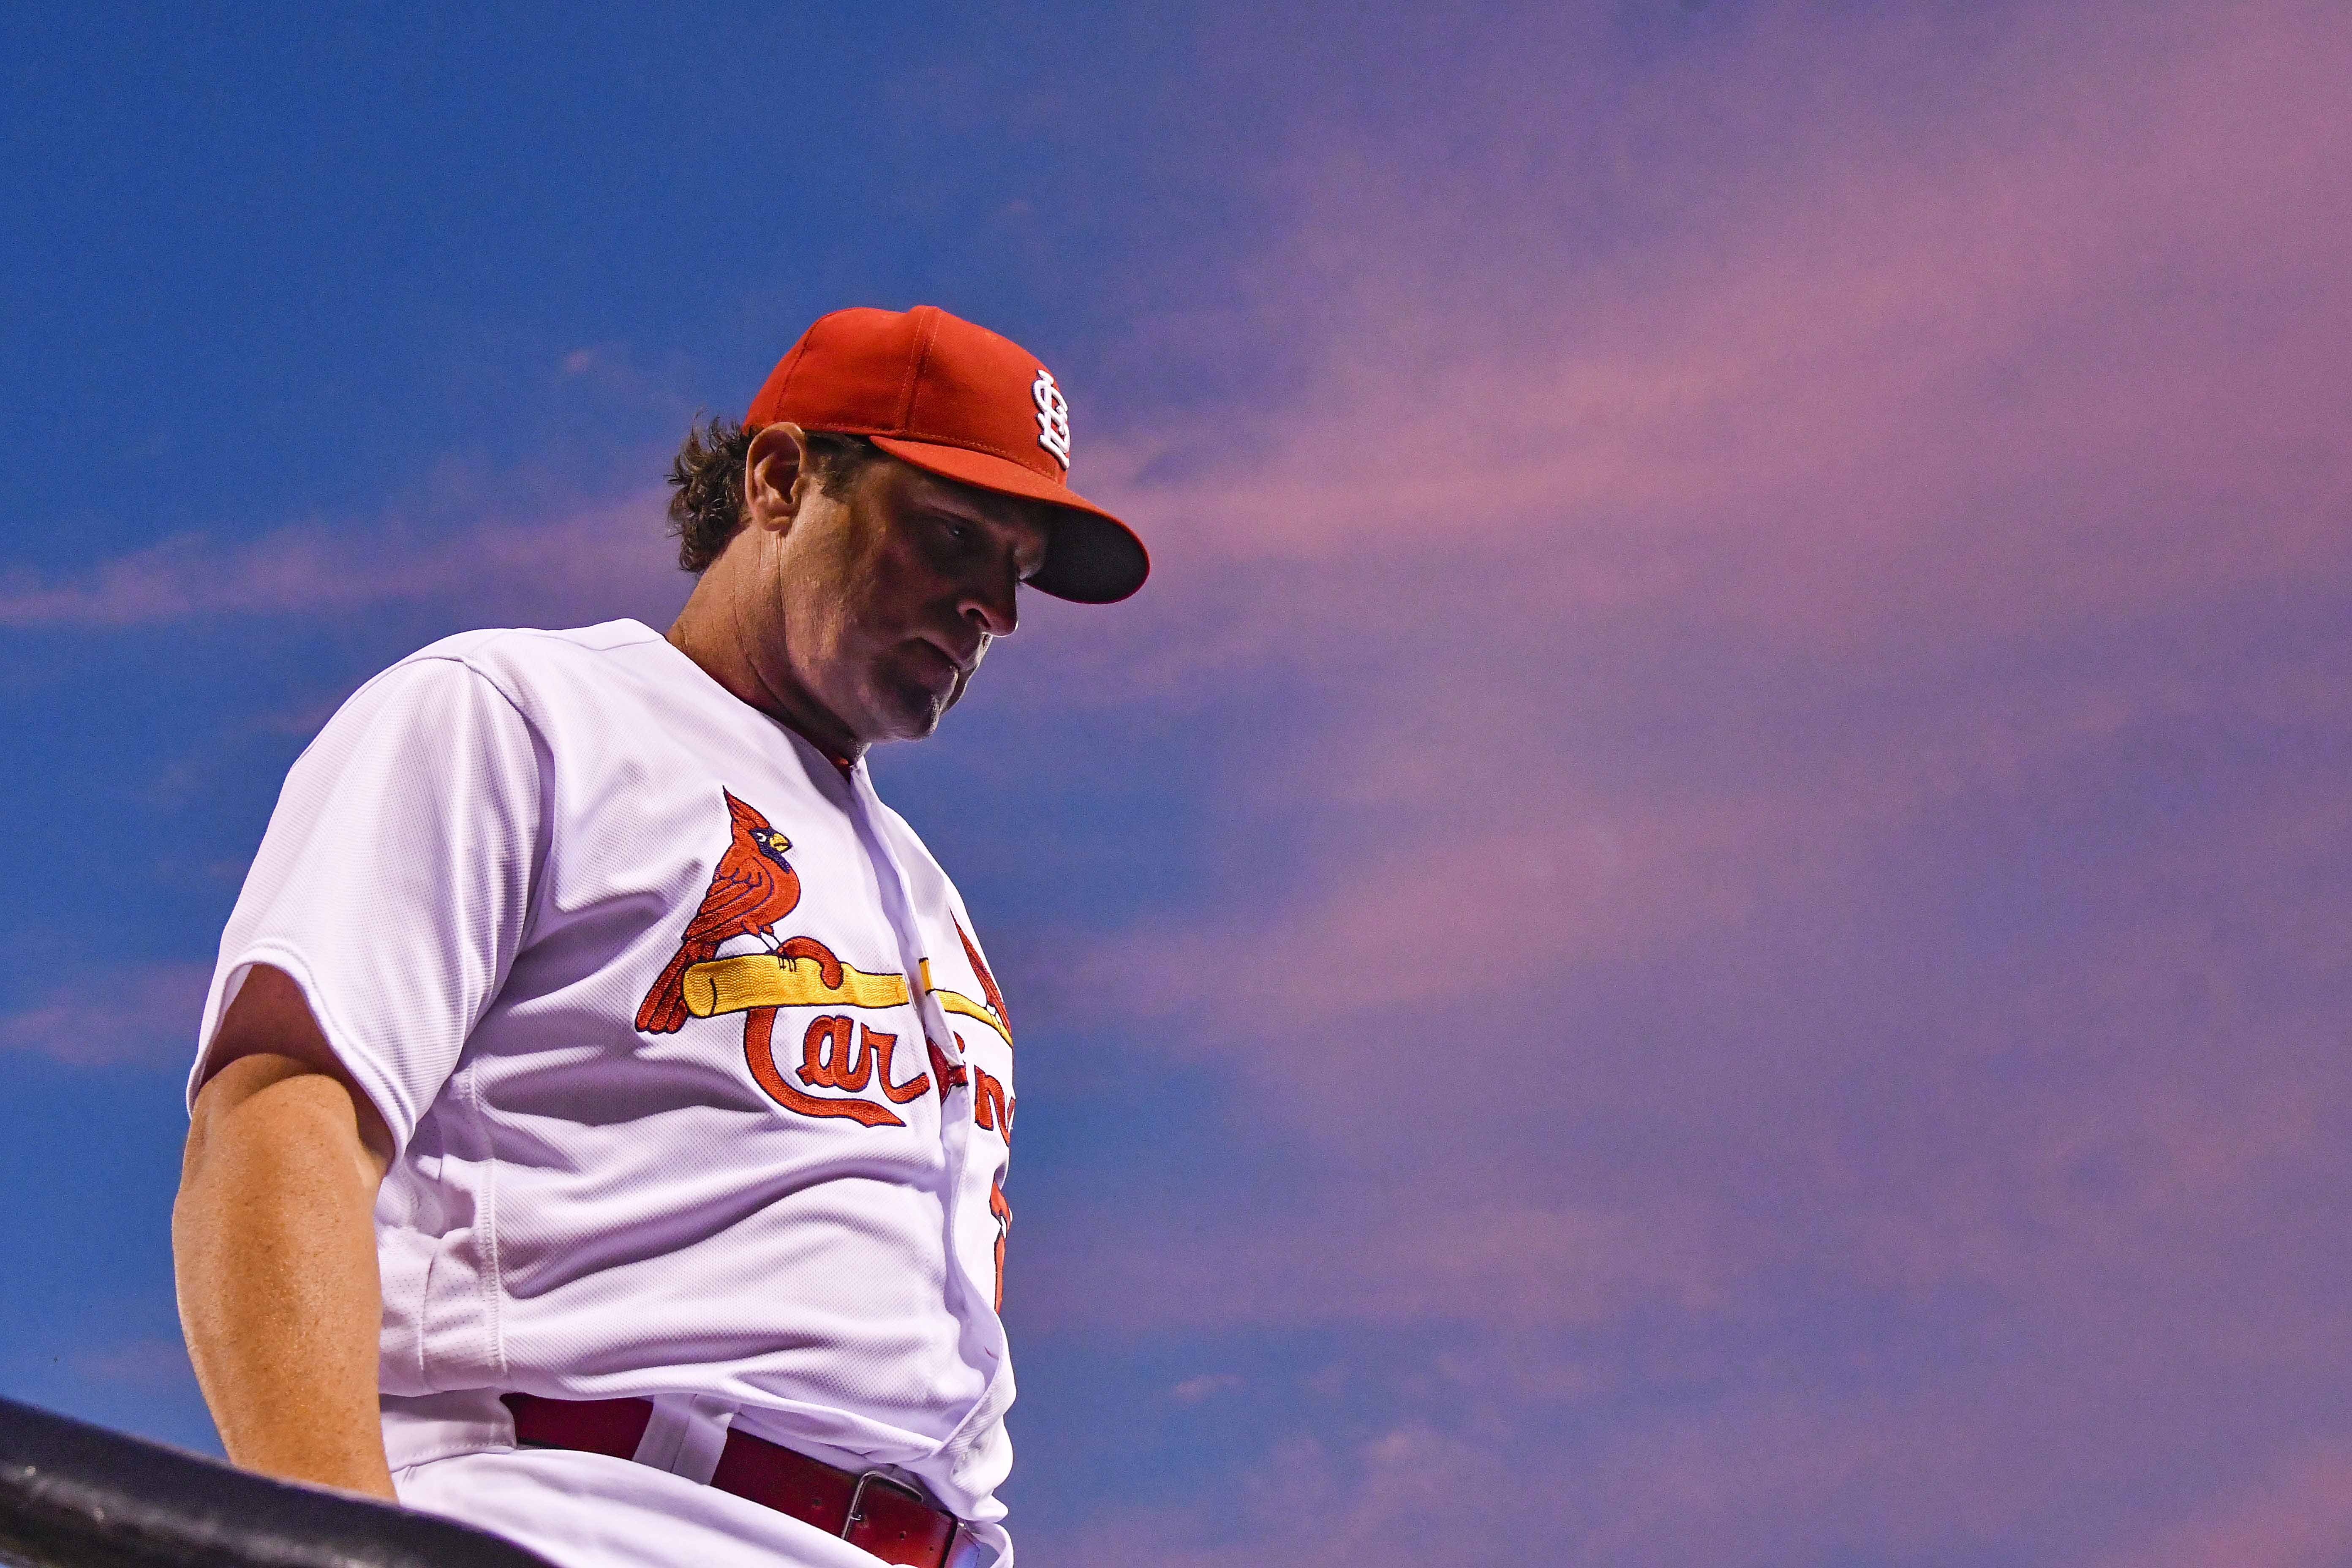 St. Louis Cardinals manager Mike Matheny (22) walks off the field after changing pitchers during the sixth inning against the Pittsburgh Pirates at Busch Stadium.